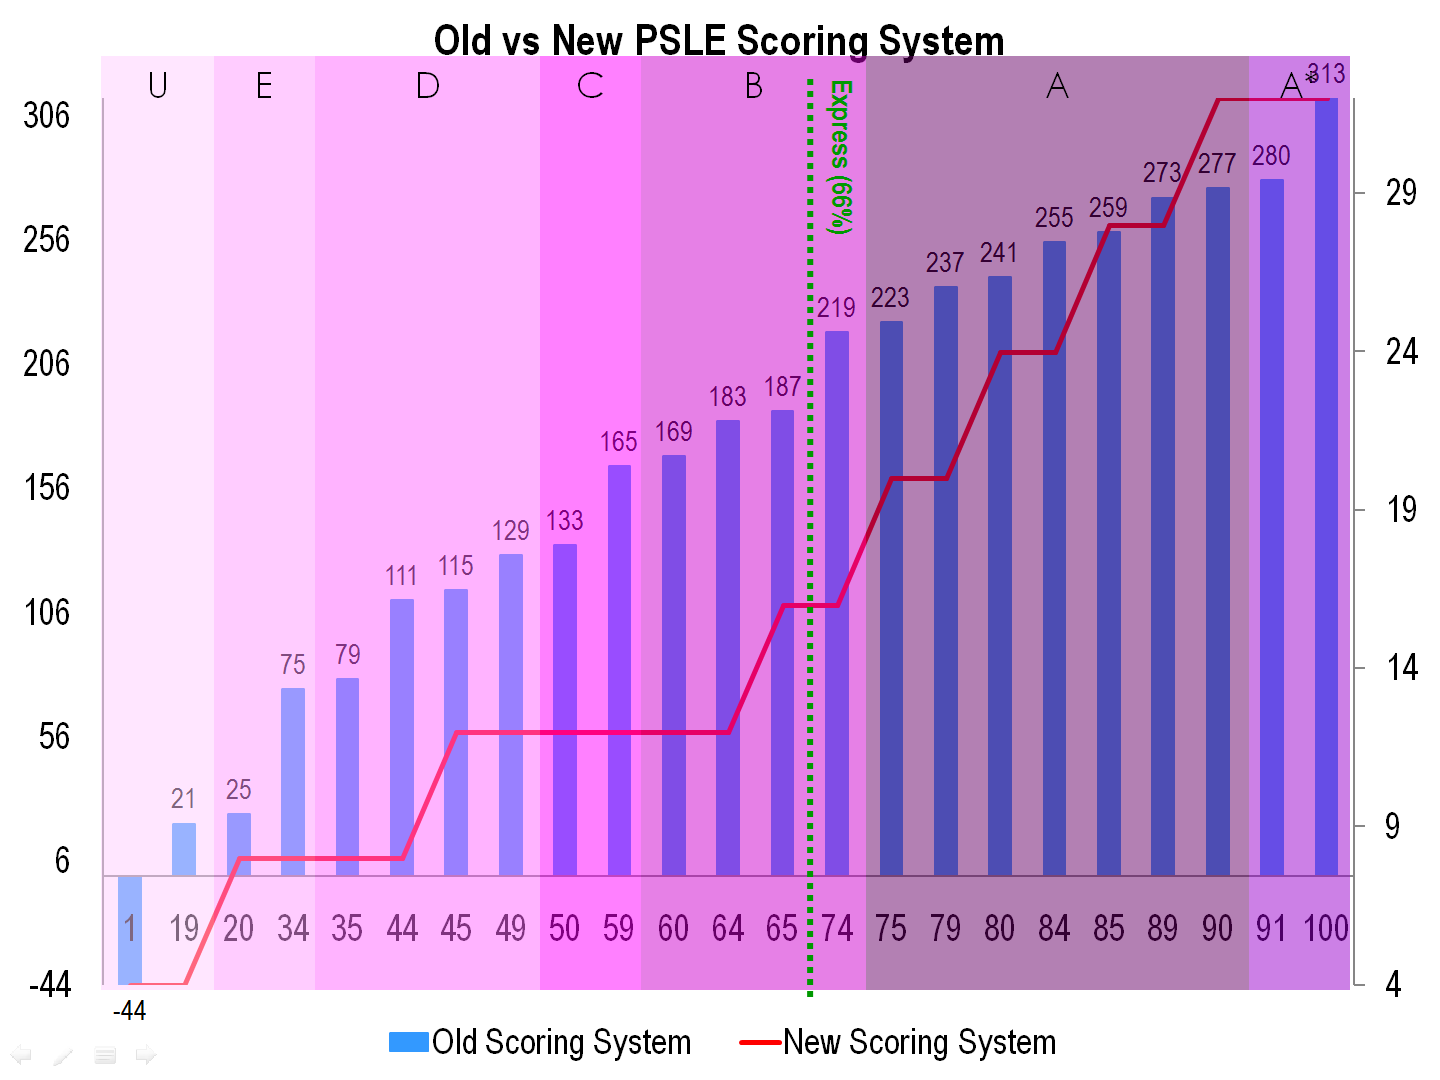 14 Old vs New PSLE Scoring System.png